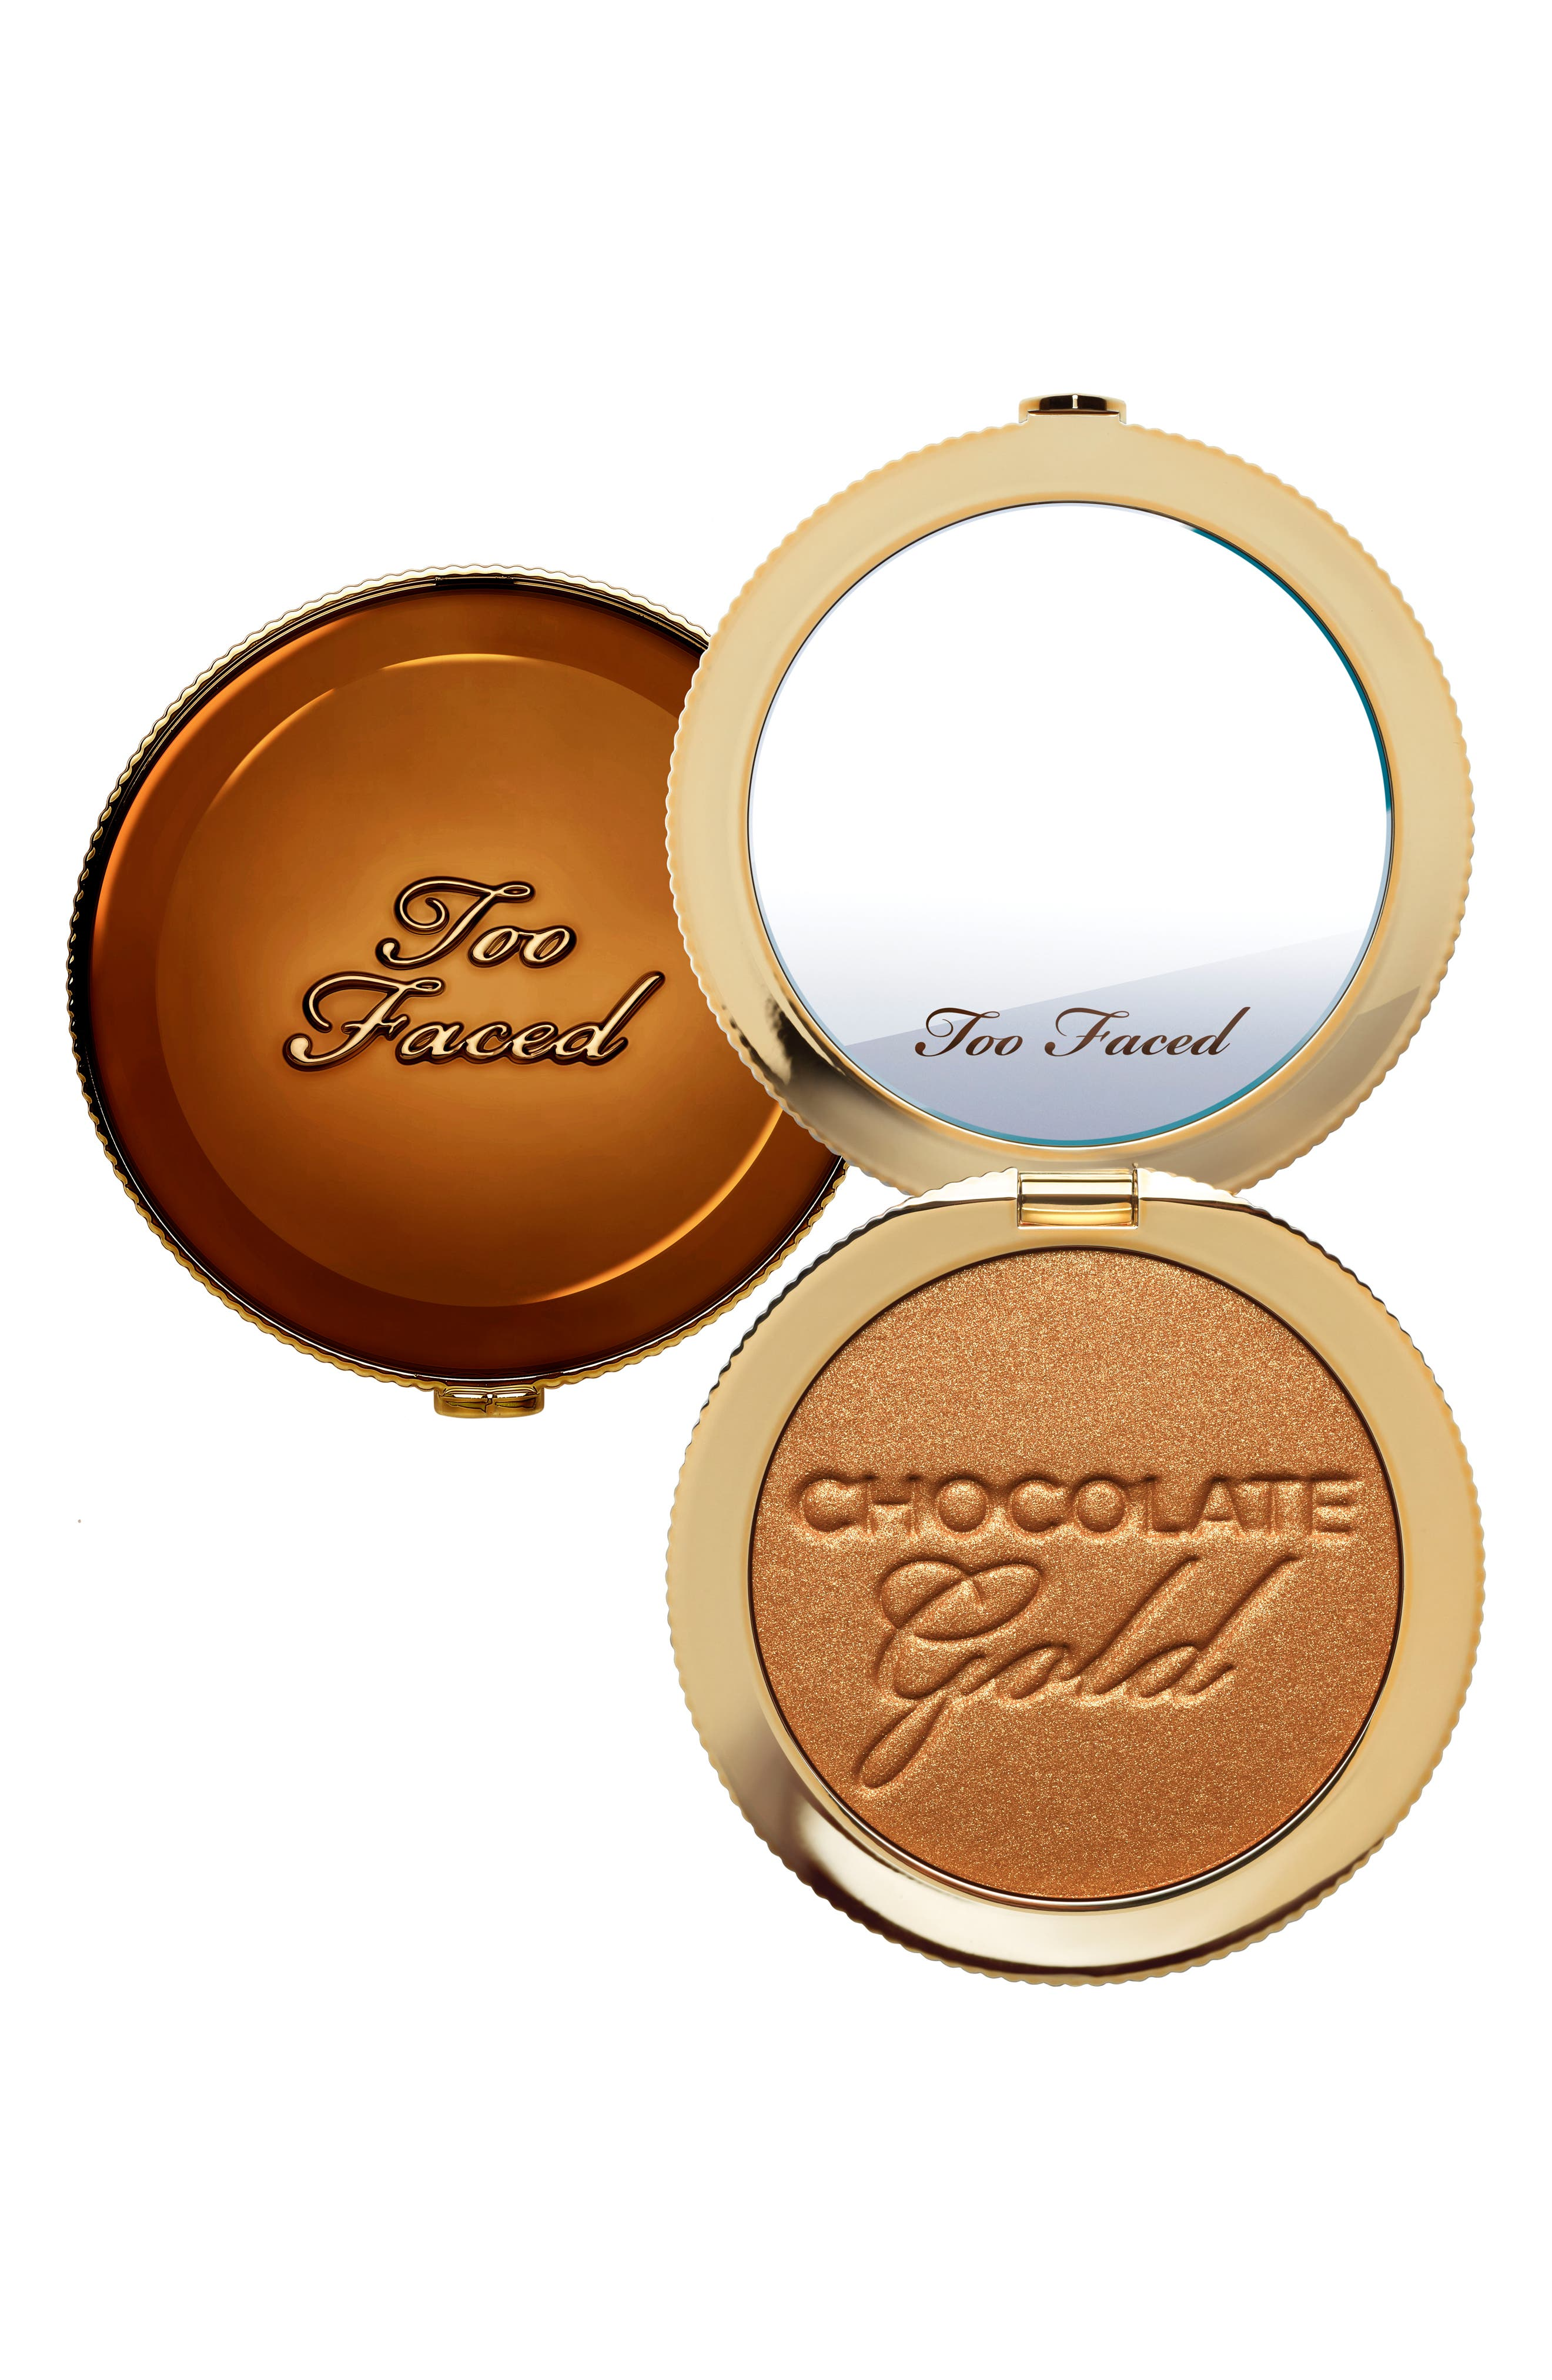 Chocolate Gold Soleil Bronzer,                             Alternate thumbnail 5, color,                             Chocolate Gold Soleil